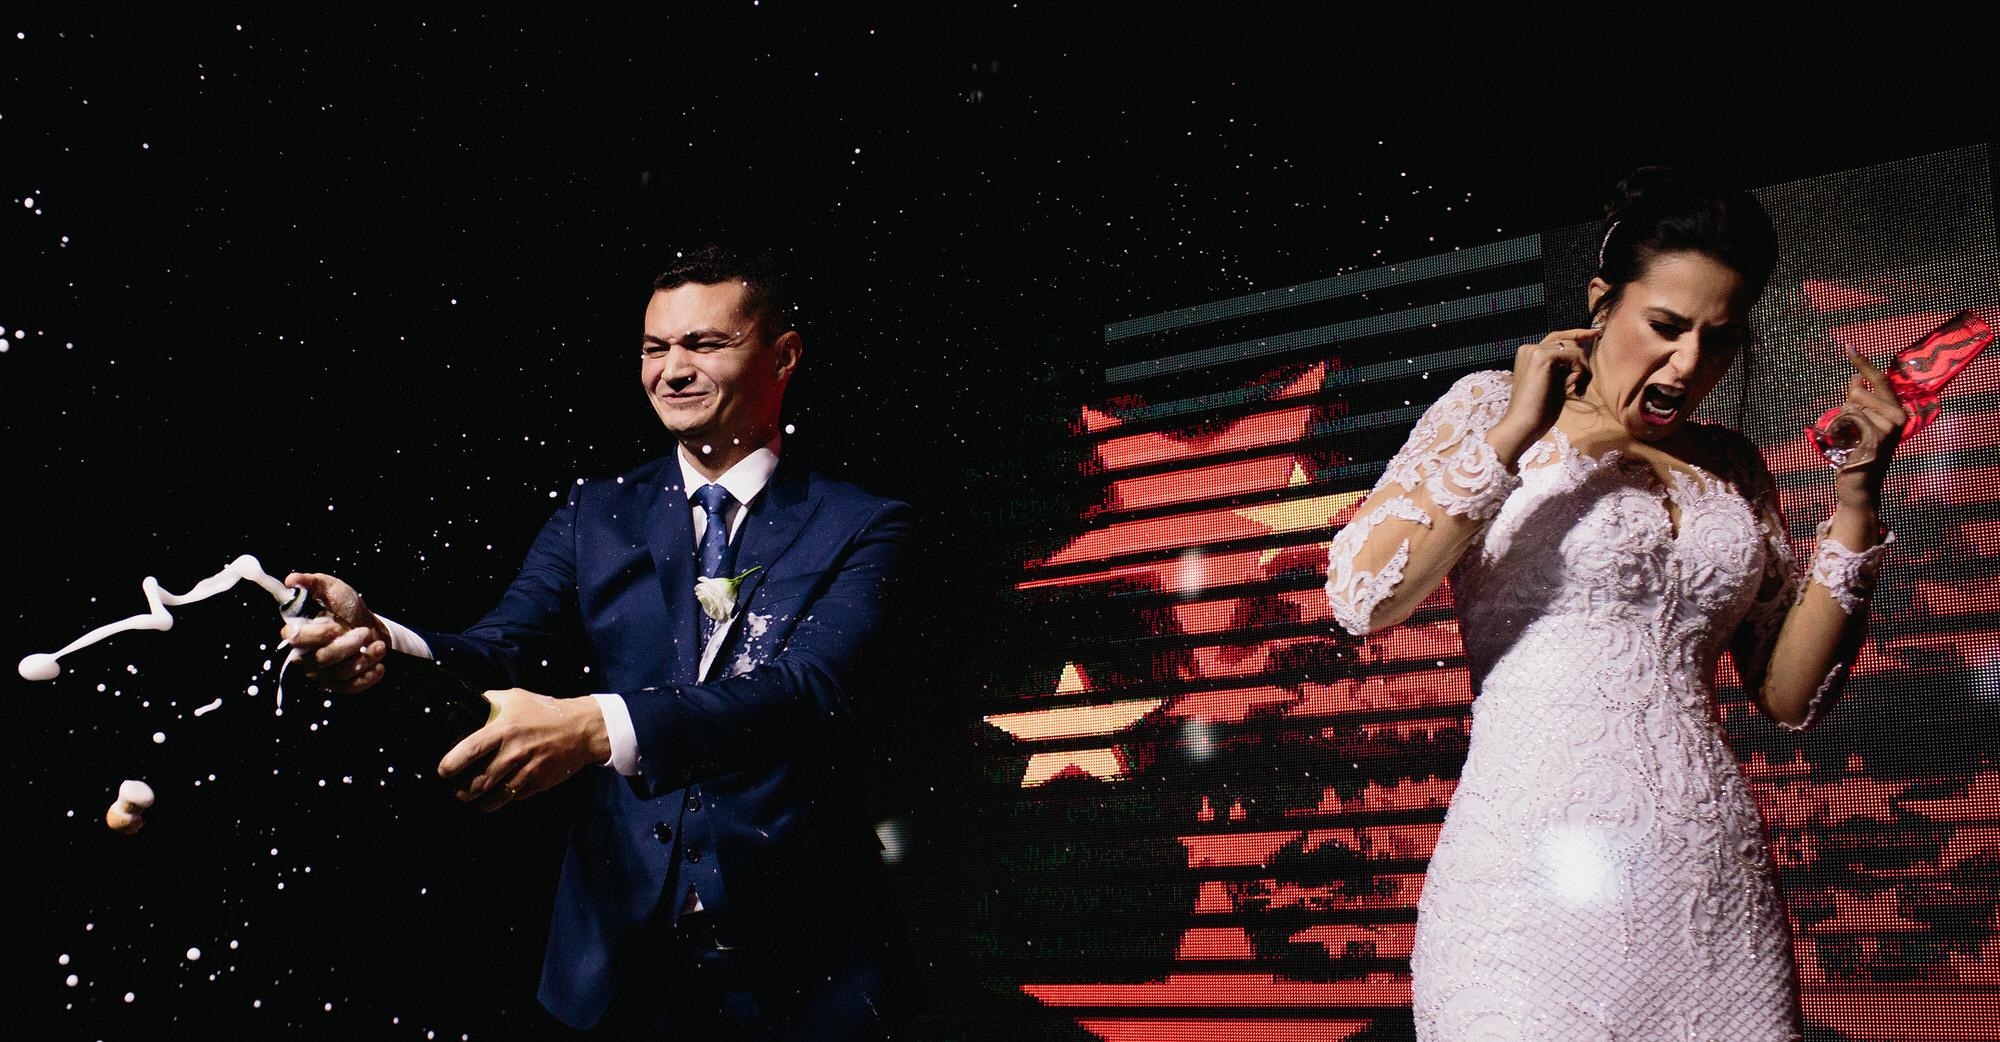 Married couple opening champagne and making a little mess